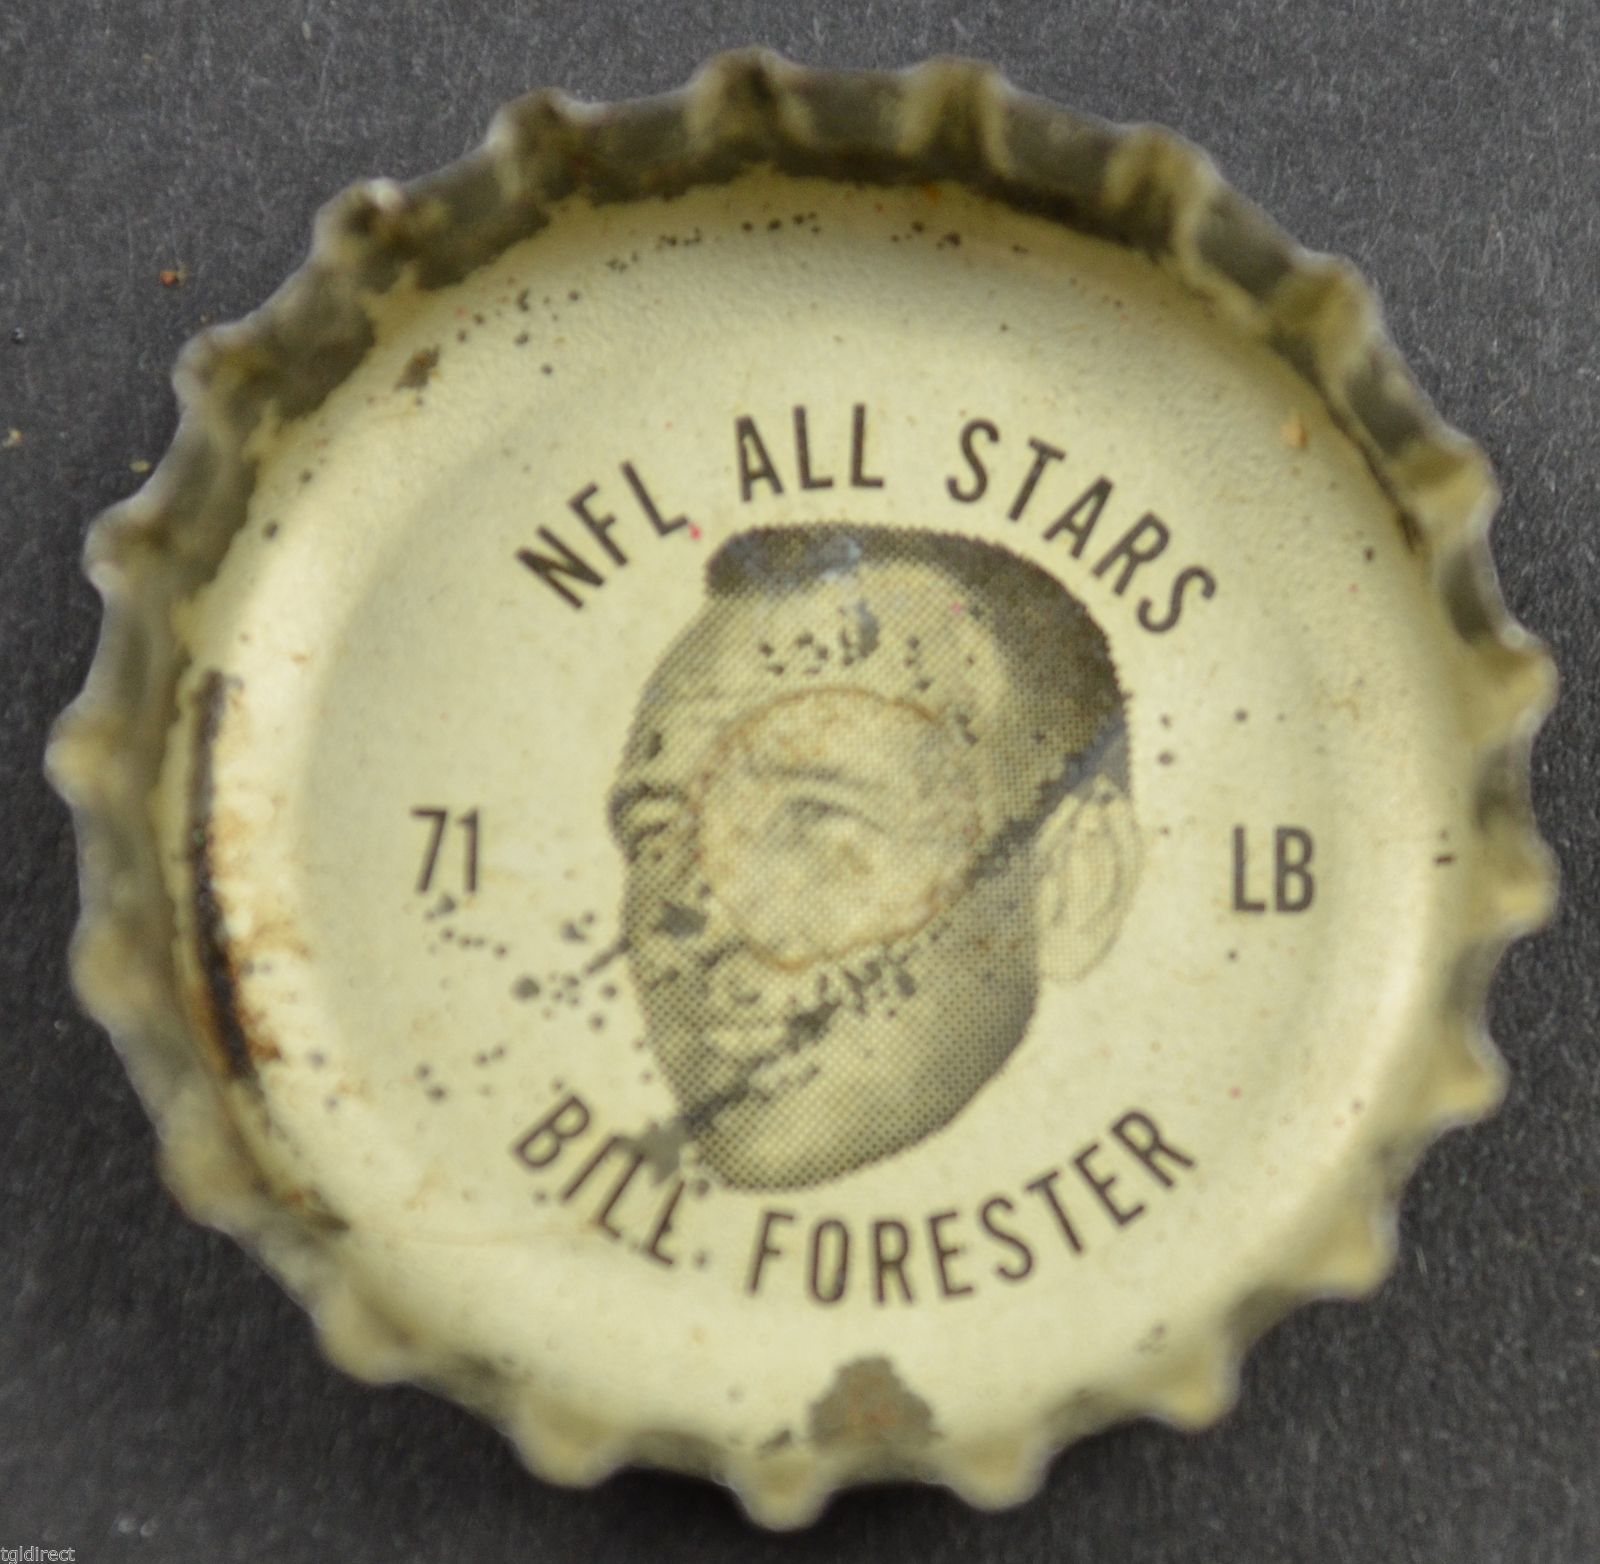 Primary image for Vintage Coca Cola NFL All Stars Bottle Cap Green Bay Packers Bill Forester Soda